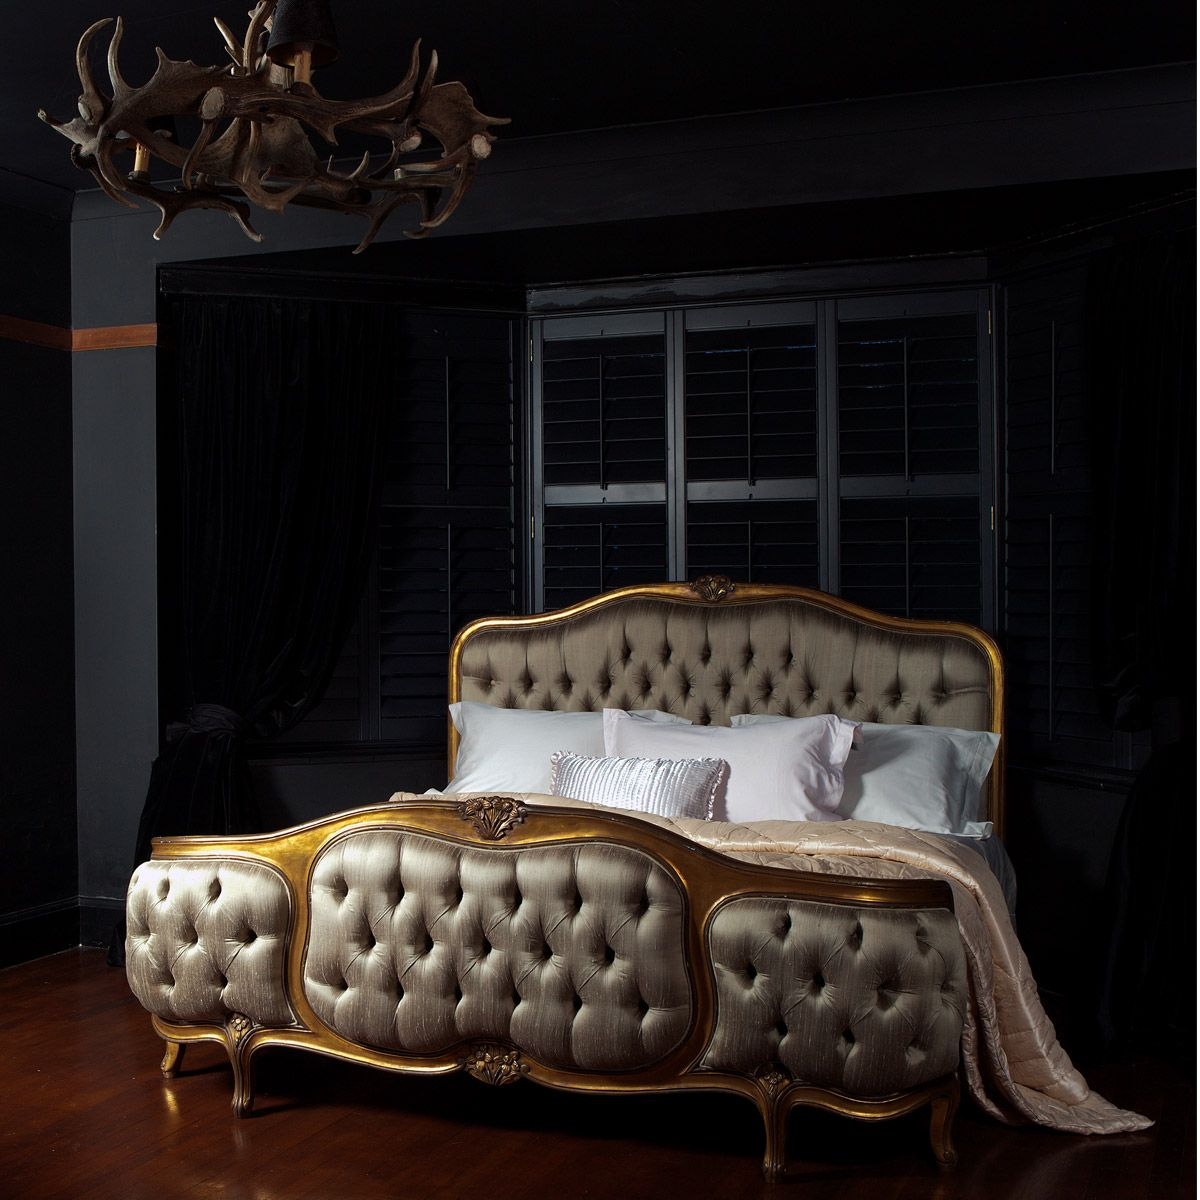 Black Black And More Black With A Touch Of Luxurious Gold Http Www Frenchbedroomcompany Co Uk Store Bed Upholstered Beds French Style Bed Luxury Bedding